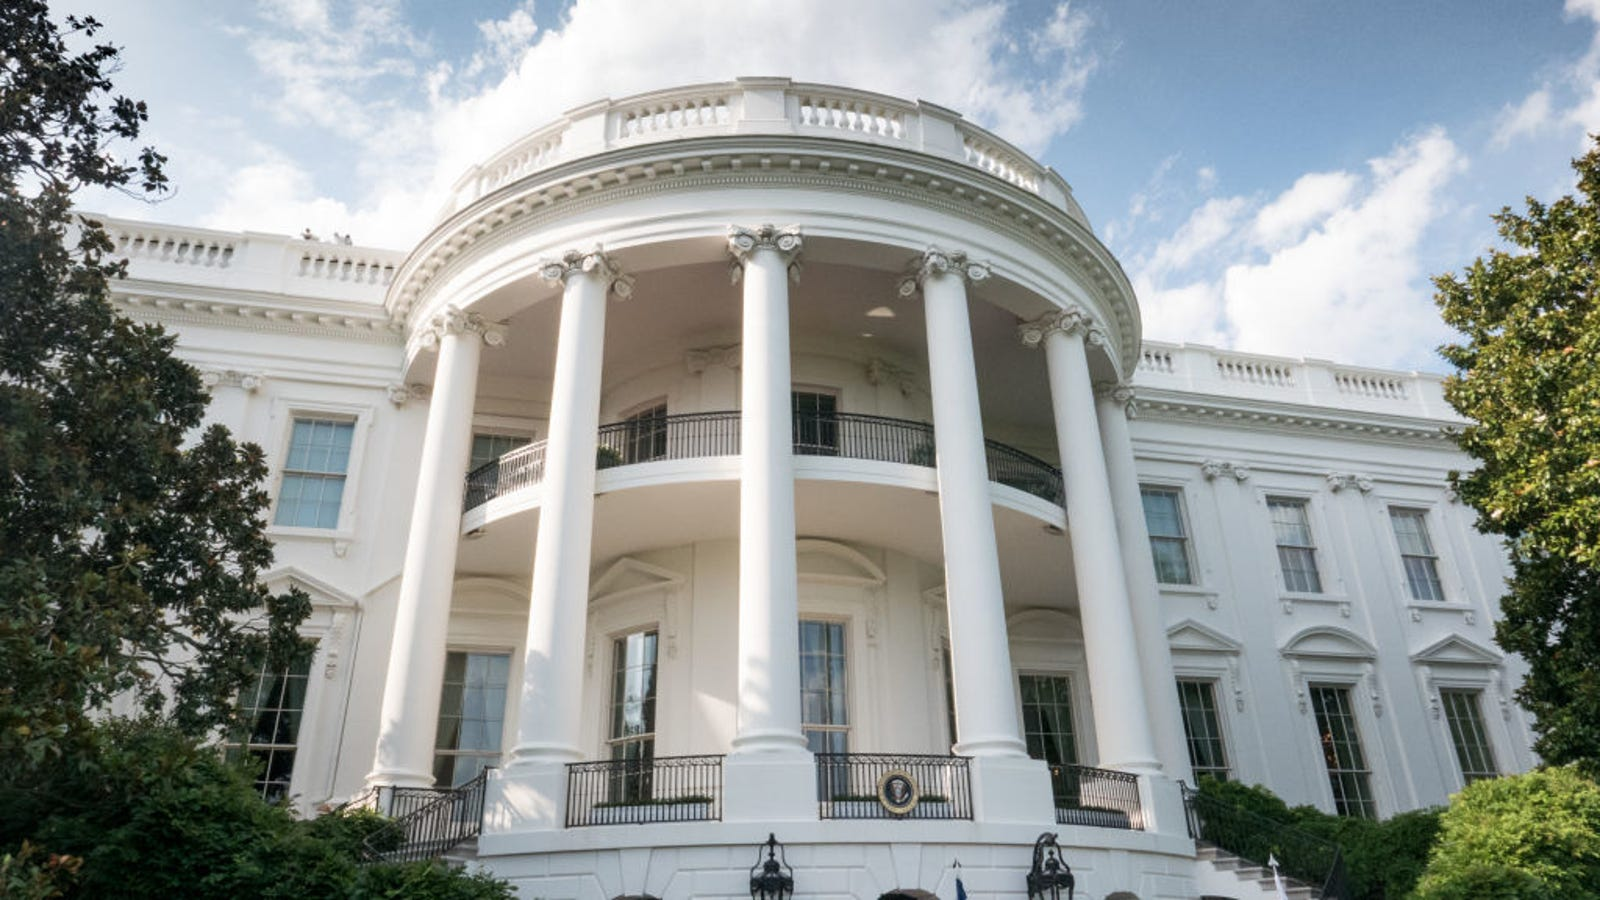 The White House Science Division Officially Has Zero Staff ...